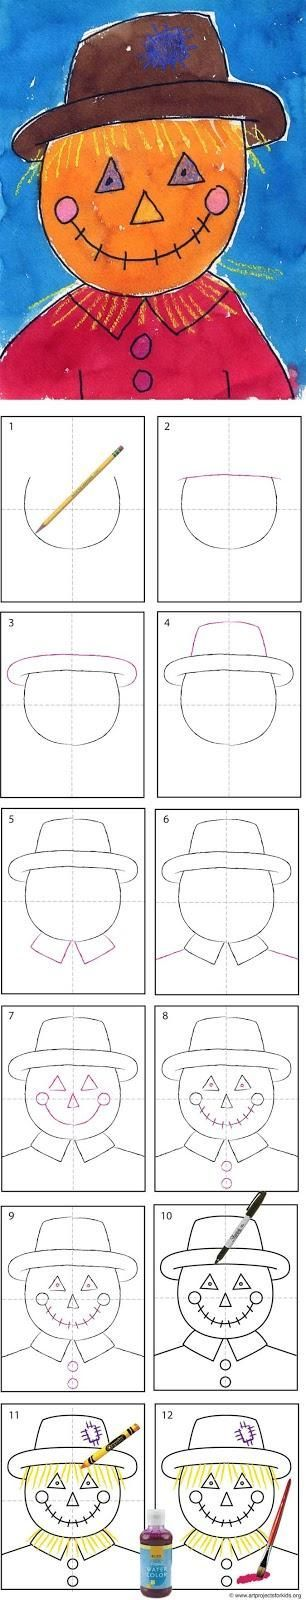 How to Draw a Scarecrow Tutorial - 12 easy to follow steps!